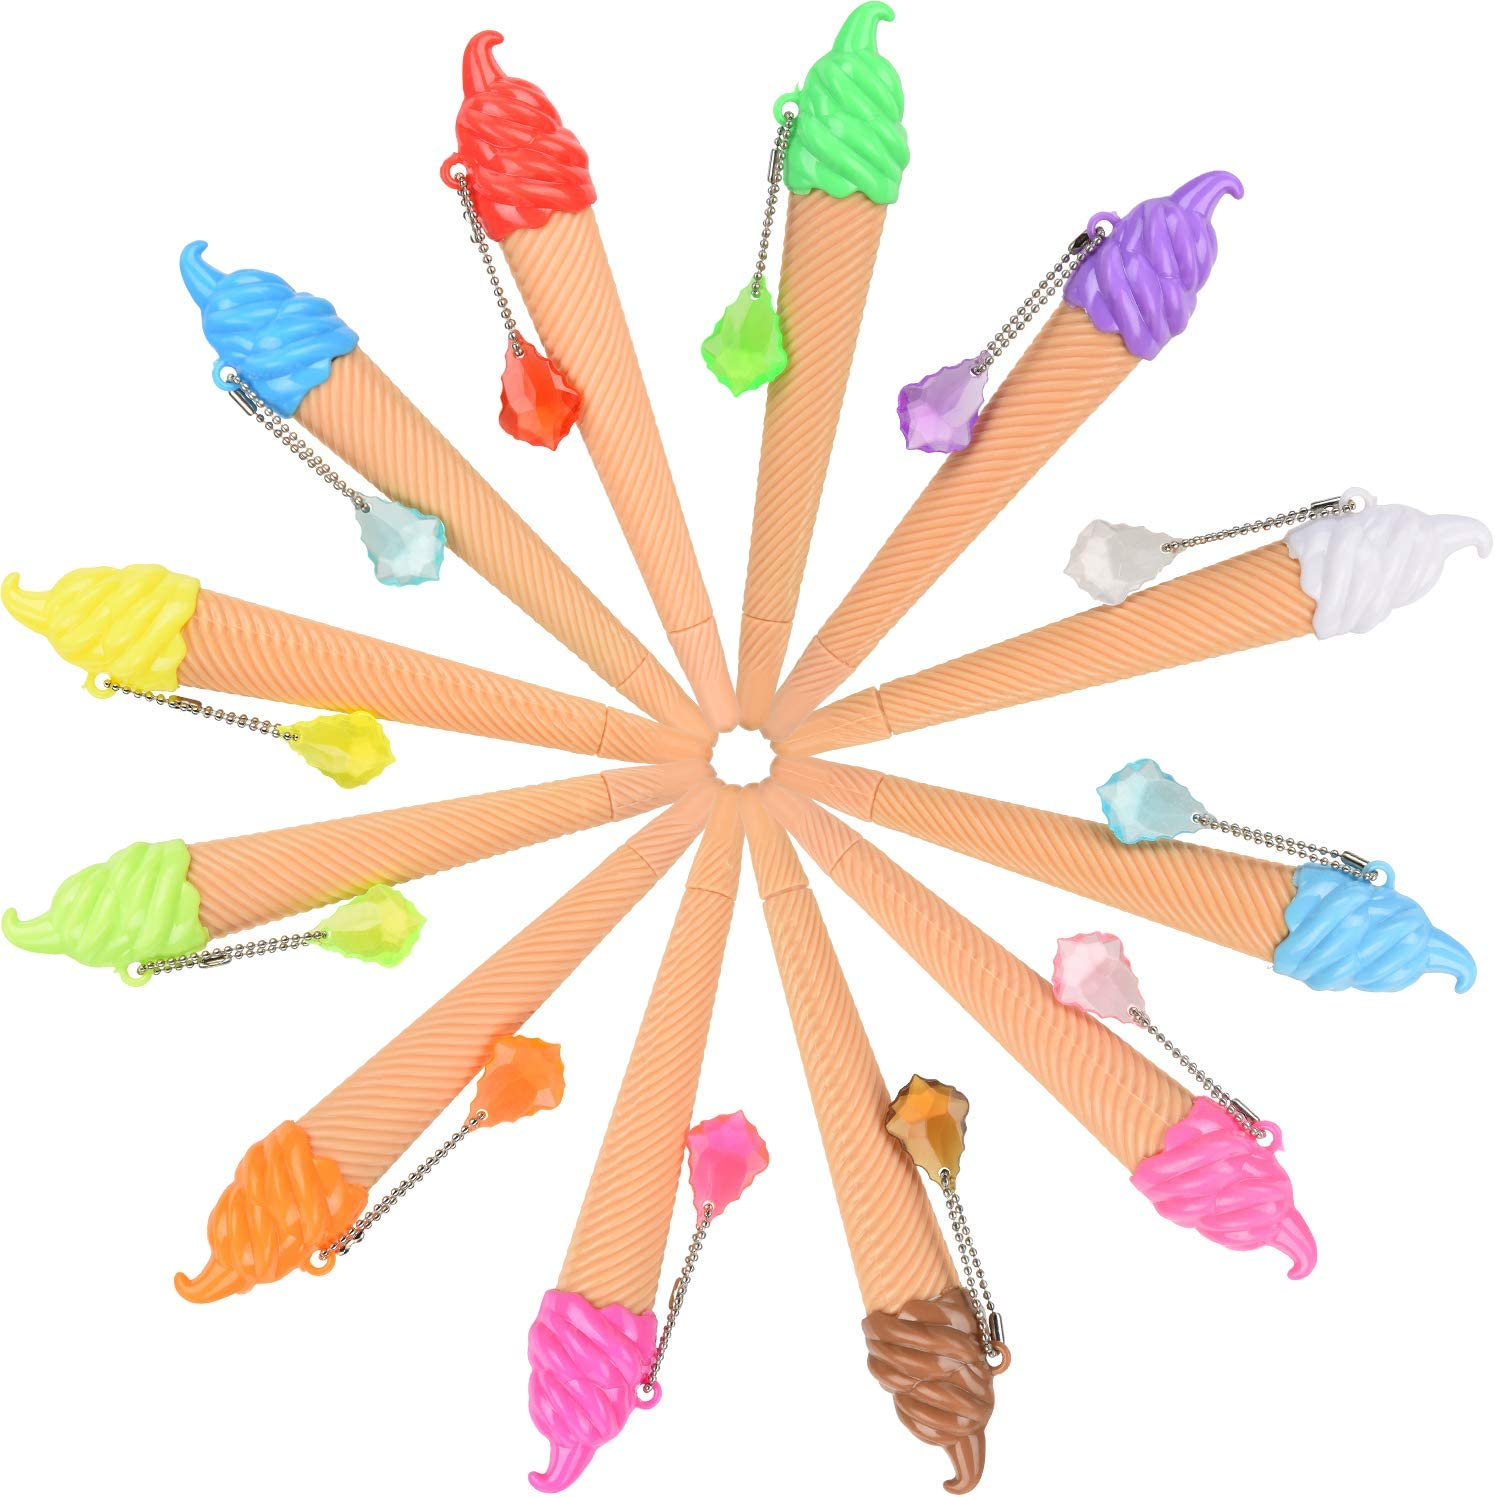 12 Pieces Christmas Ice Cream Pen Novelty Cute Ink Pen Assorted Color Writing Pen for Kids School Supplies Party Favor